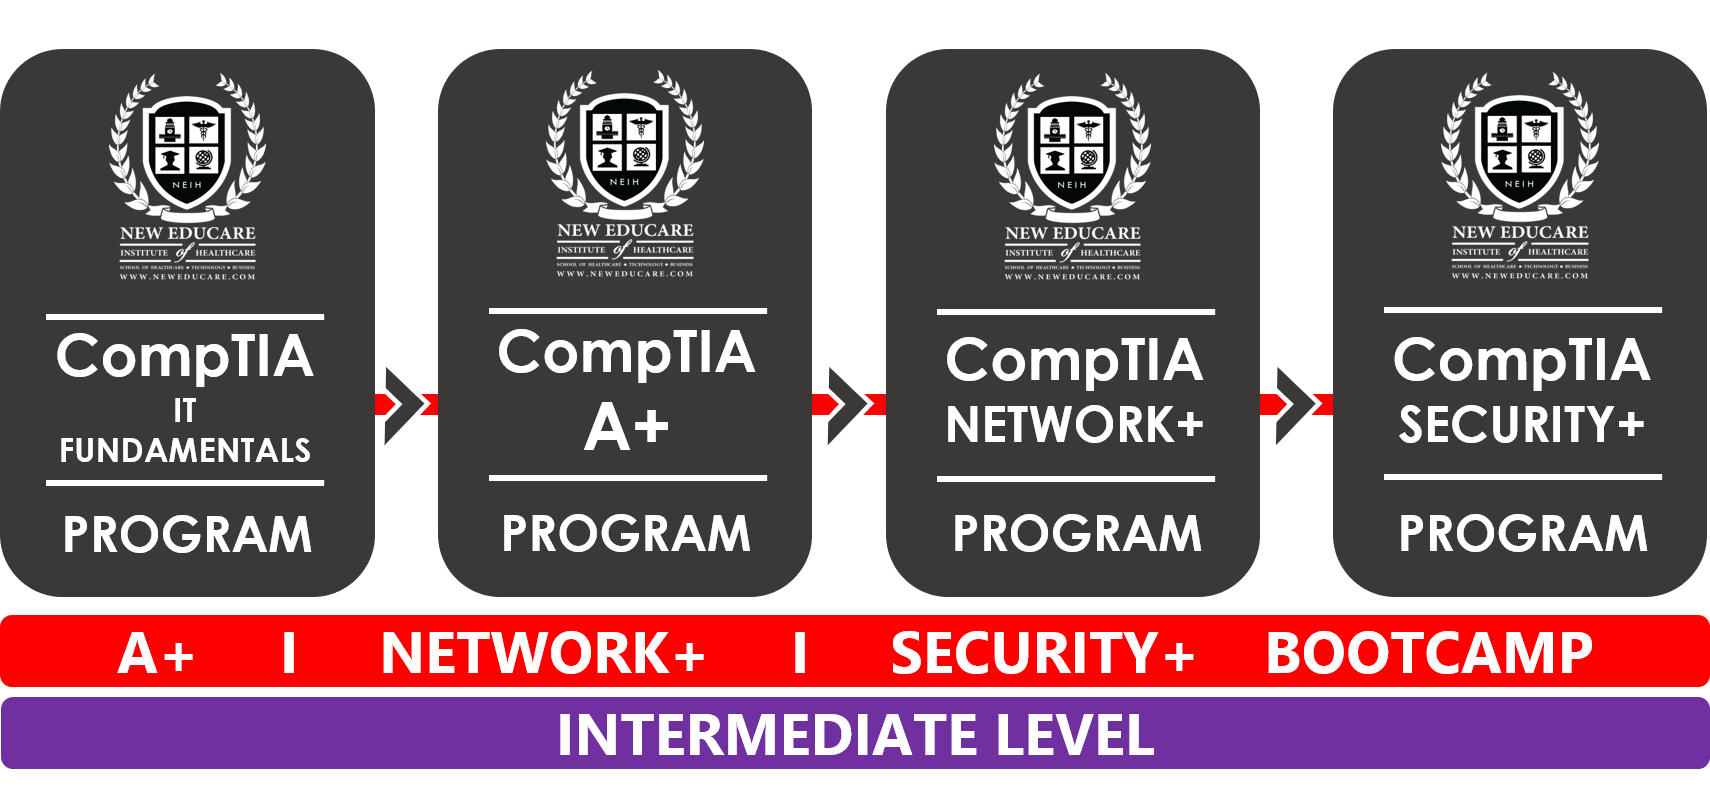 Comptia A Network Security Bootcamp Certification Program I New